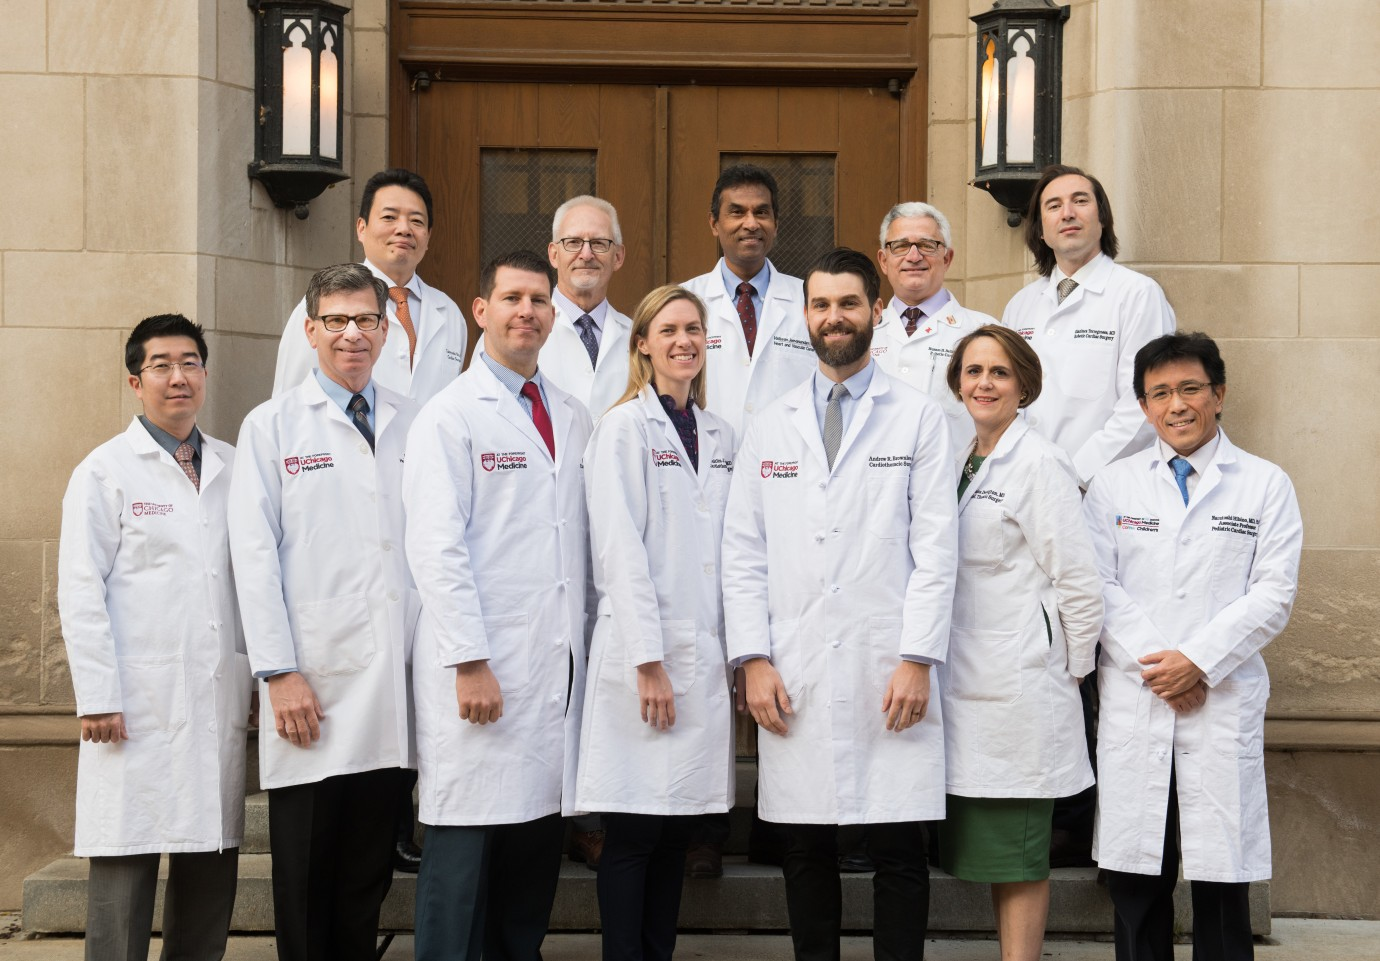 Cardiothoracic Fellowship Department Of Surgery The University Of Chicago